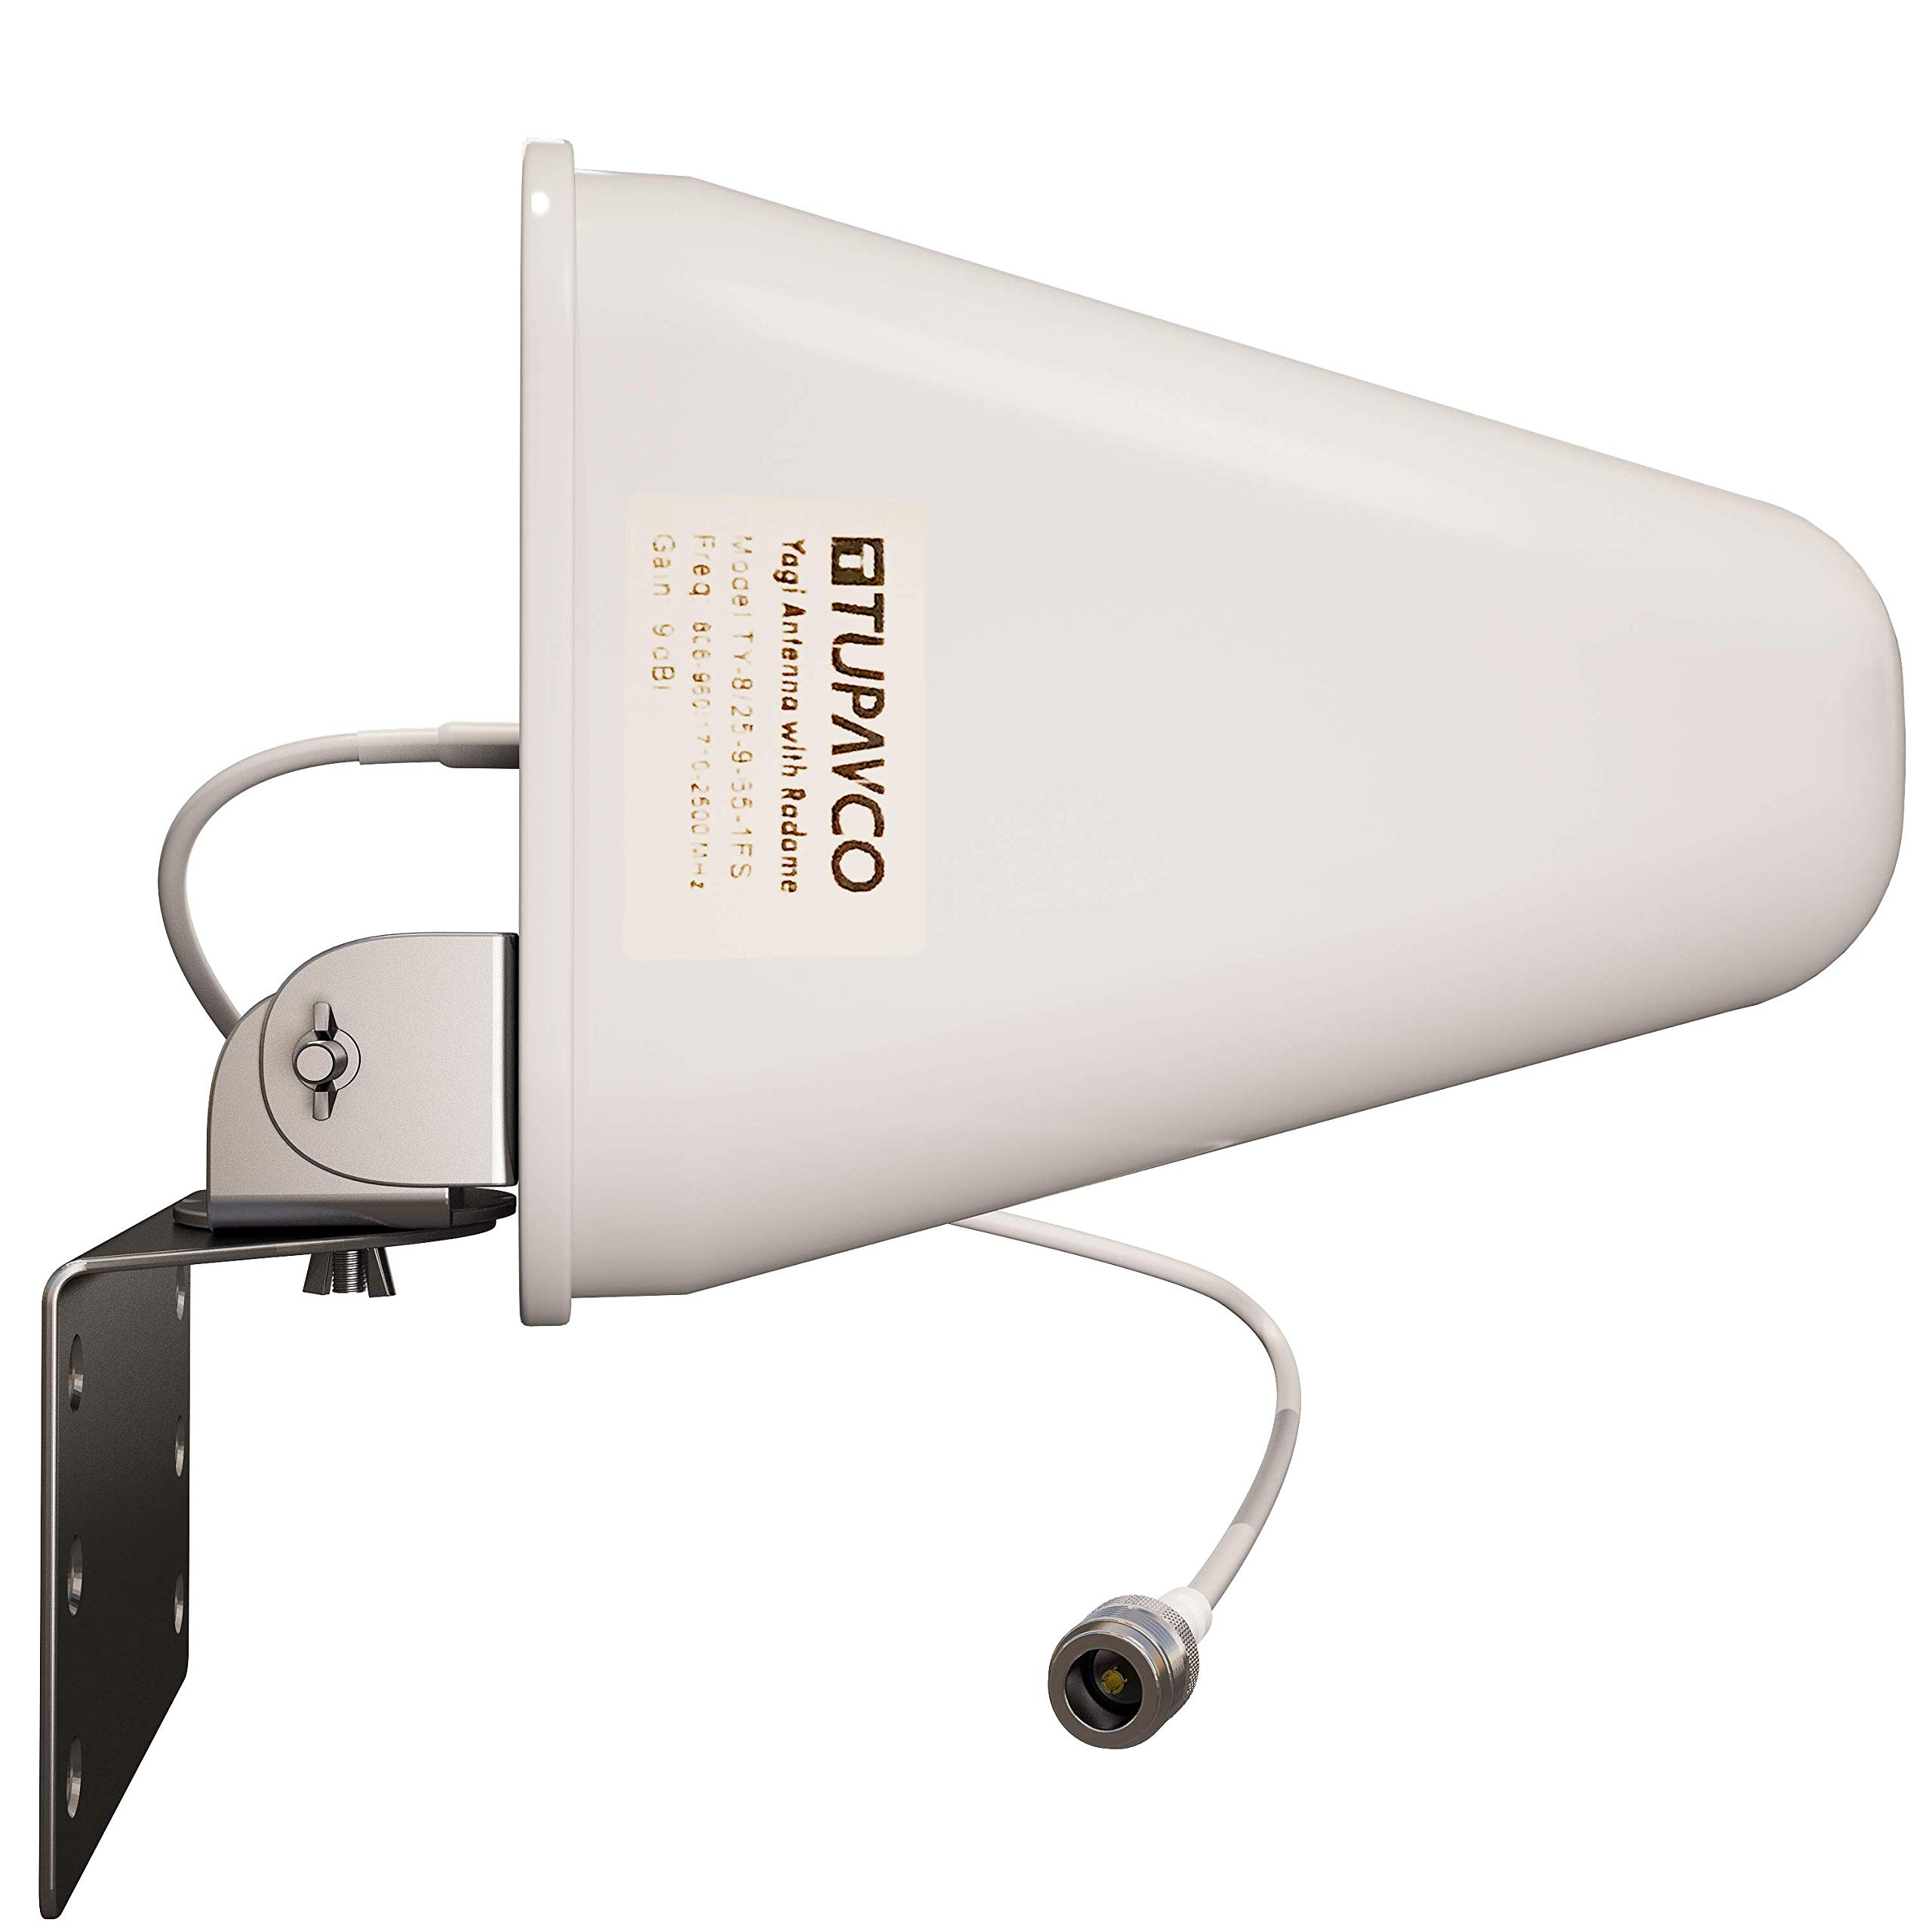 Tupavco DB541 Yagi WiFi Antenna Dual Band - (2.4GHz) and (5GHz/5.8GHz) 9dBi - Medium Range Directional Wireless LAN Network Antenna